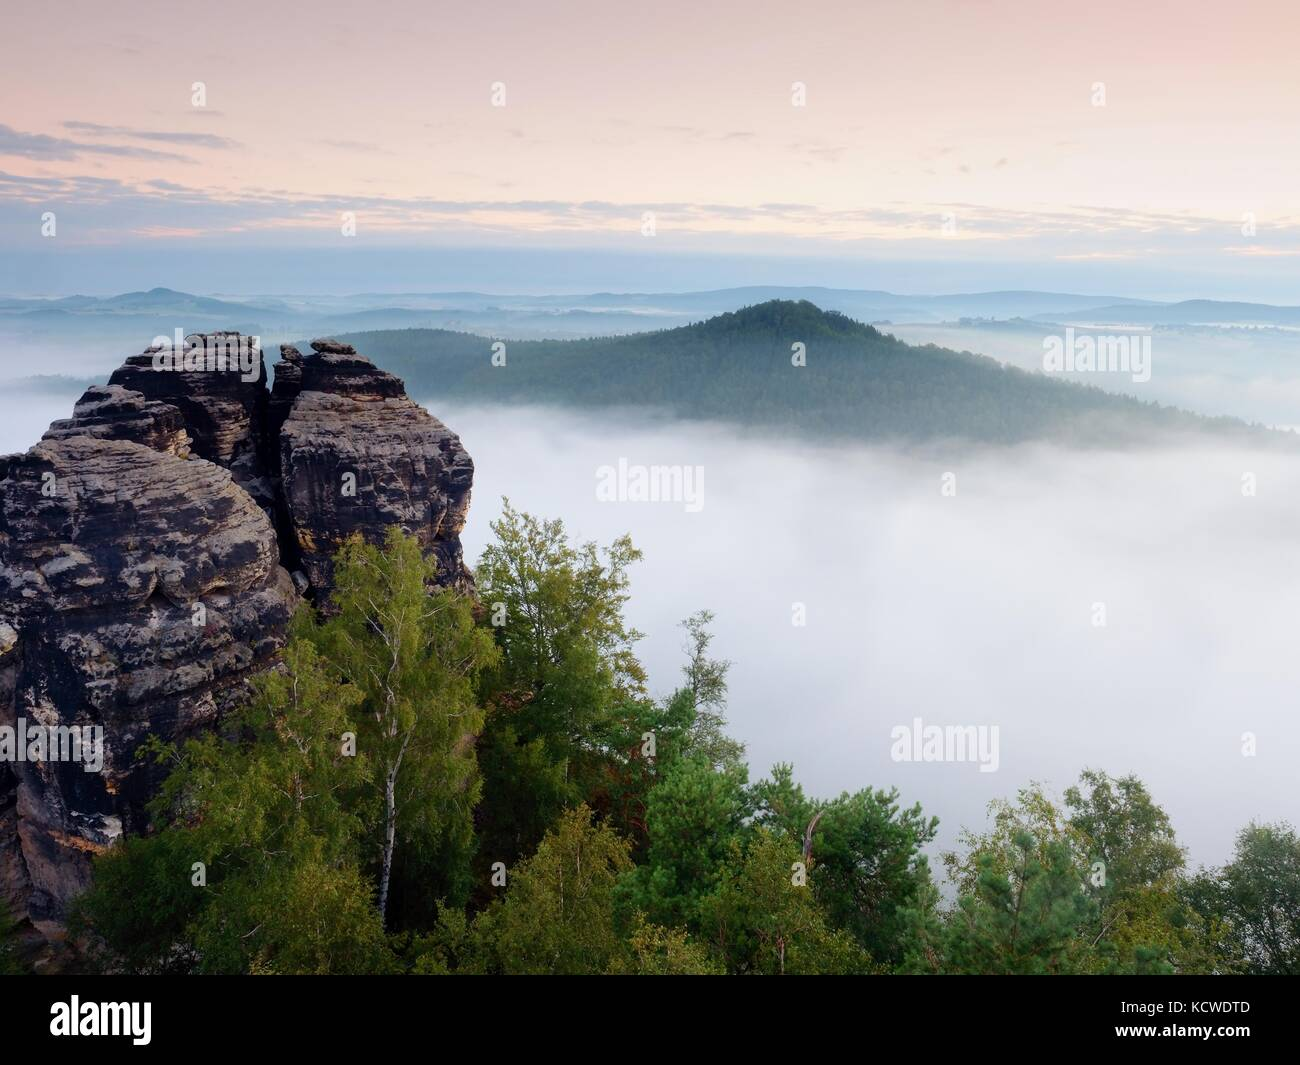 Sharp sandstone cliffs above deep misty valley. Popular climbers resort. Rocks sticking up from fogy lanscape to - Stock Image